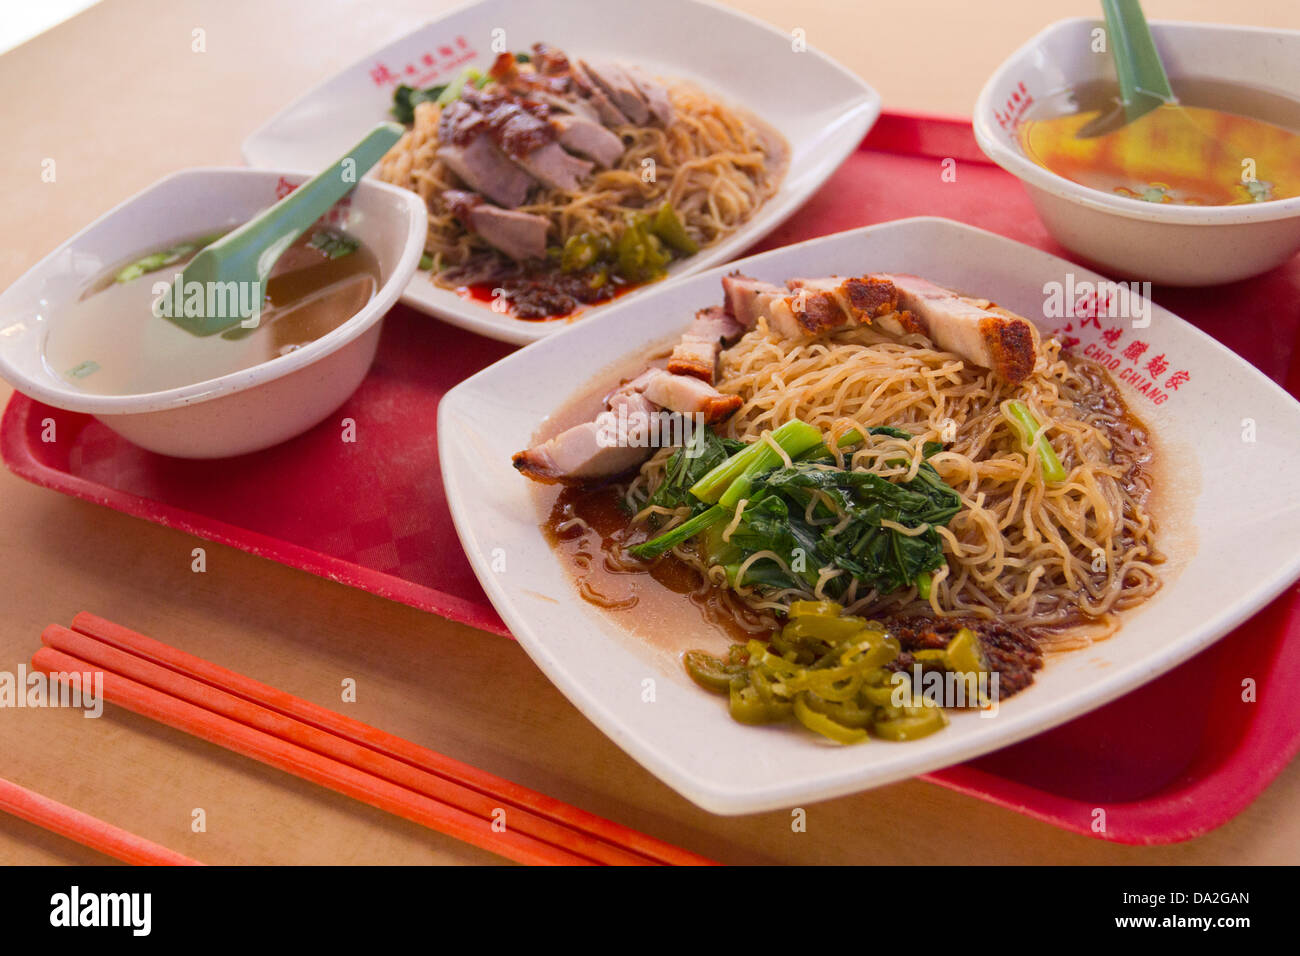 Two plates of Chinese food, one with roast duck and noodles, the other with crispy belly pork, Bugis, Singapore - Stock Image